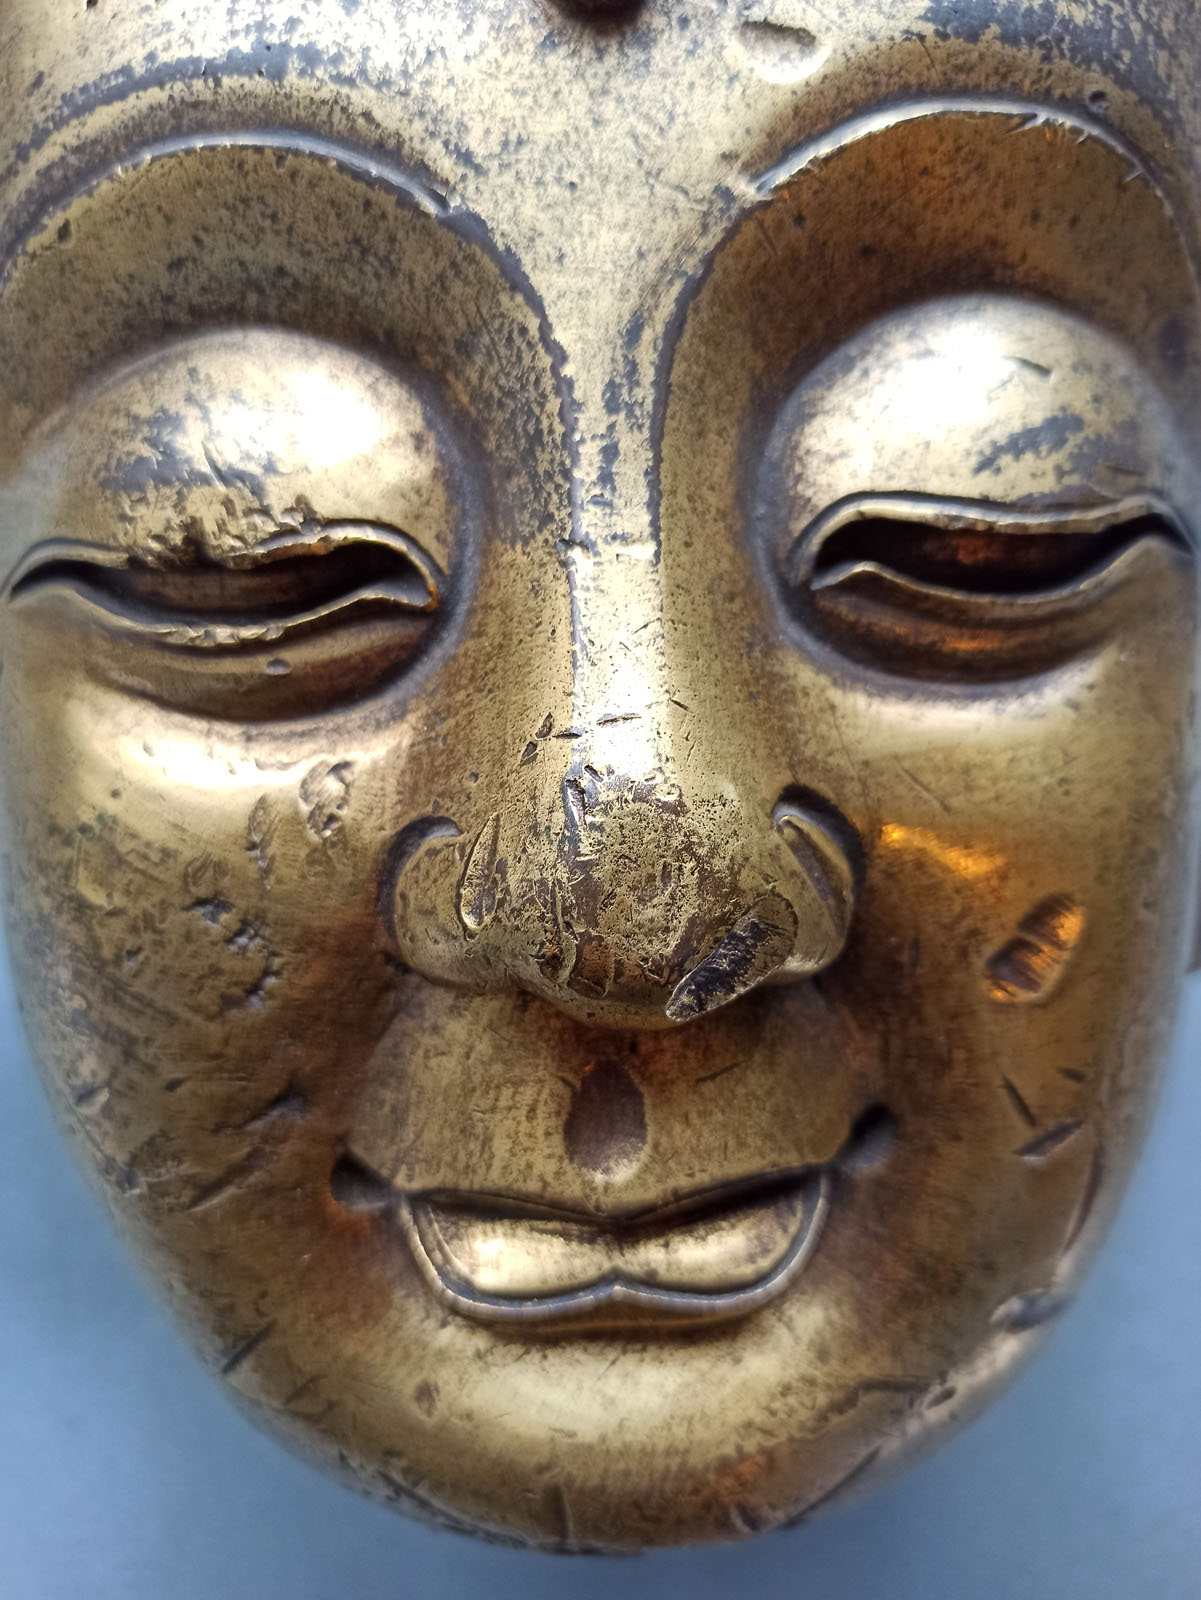 A LARGE GILT-BRONZE HEAD OF BUDDHA ON A WOOD STAND - Image 12 of 13